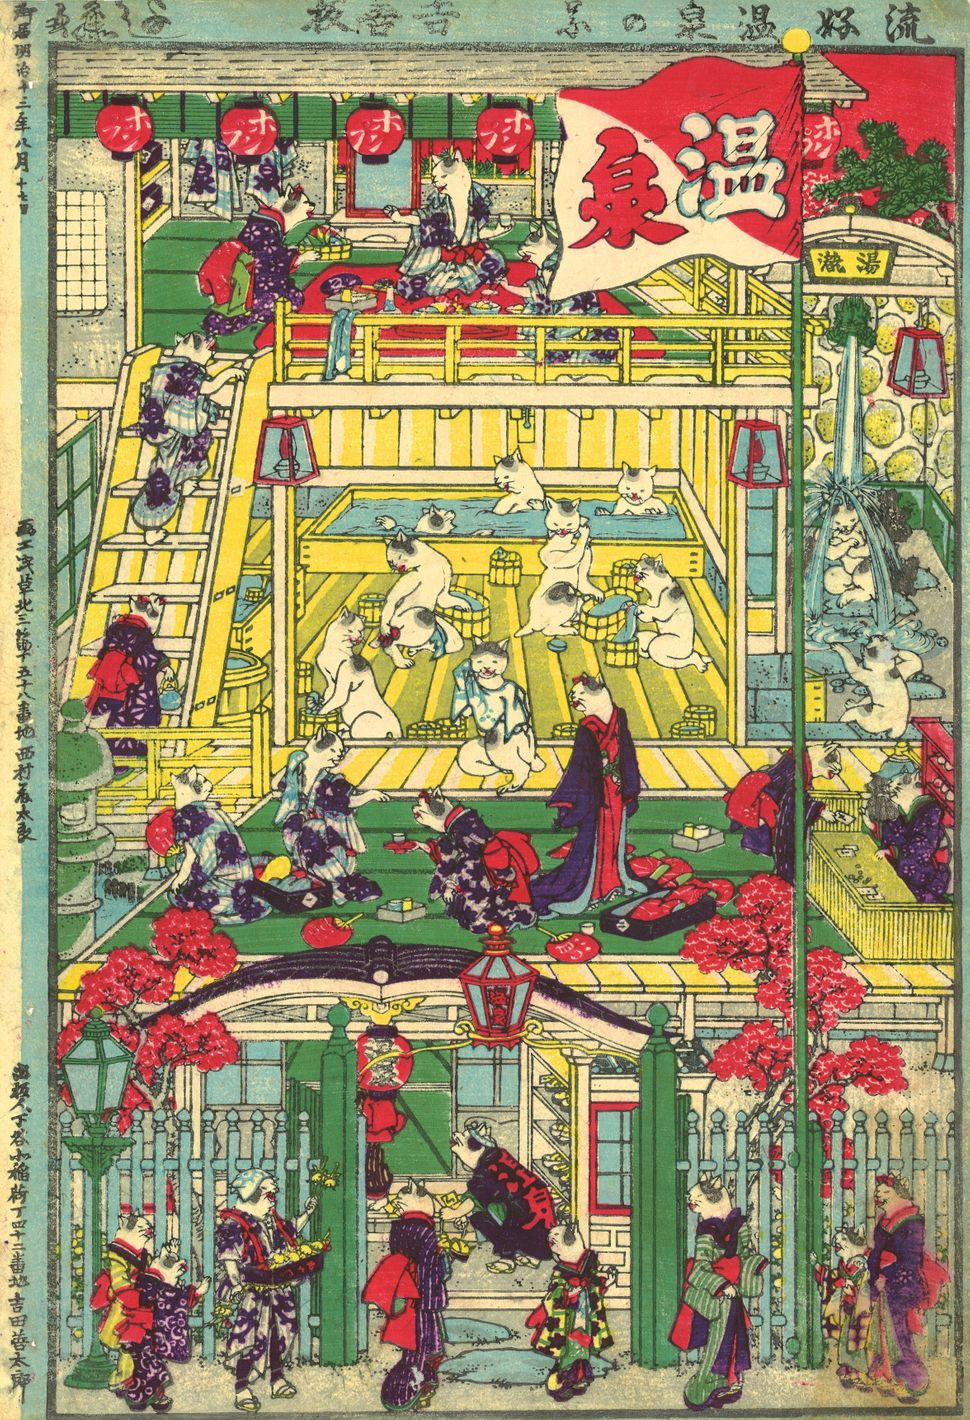 Utagawa Yoshifuji (1828–1887), Popular Hotspring Spa [of Cats], 1880. Color woodblock print; 22 ½ x 16 inches. Courtesy Hirak